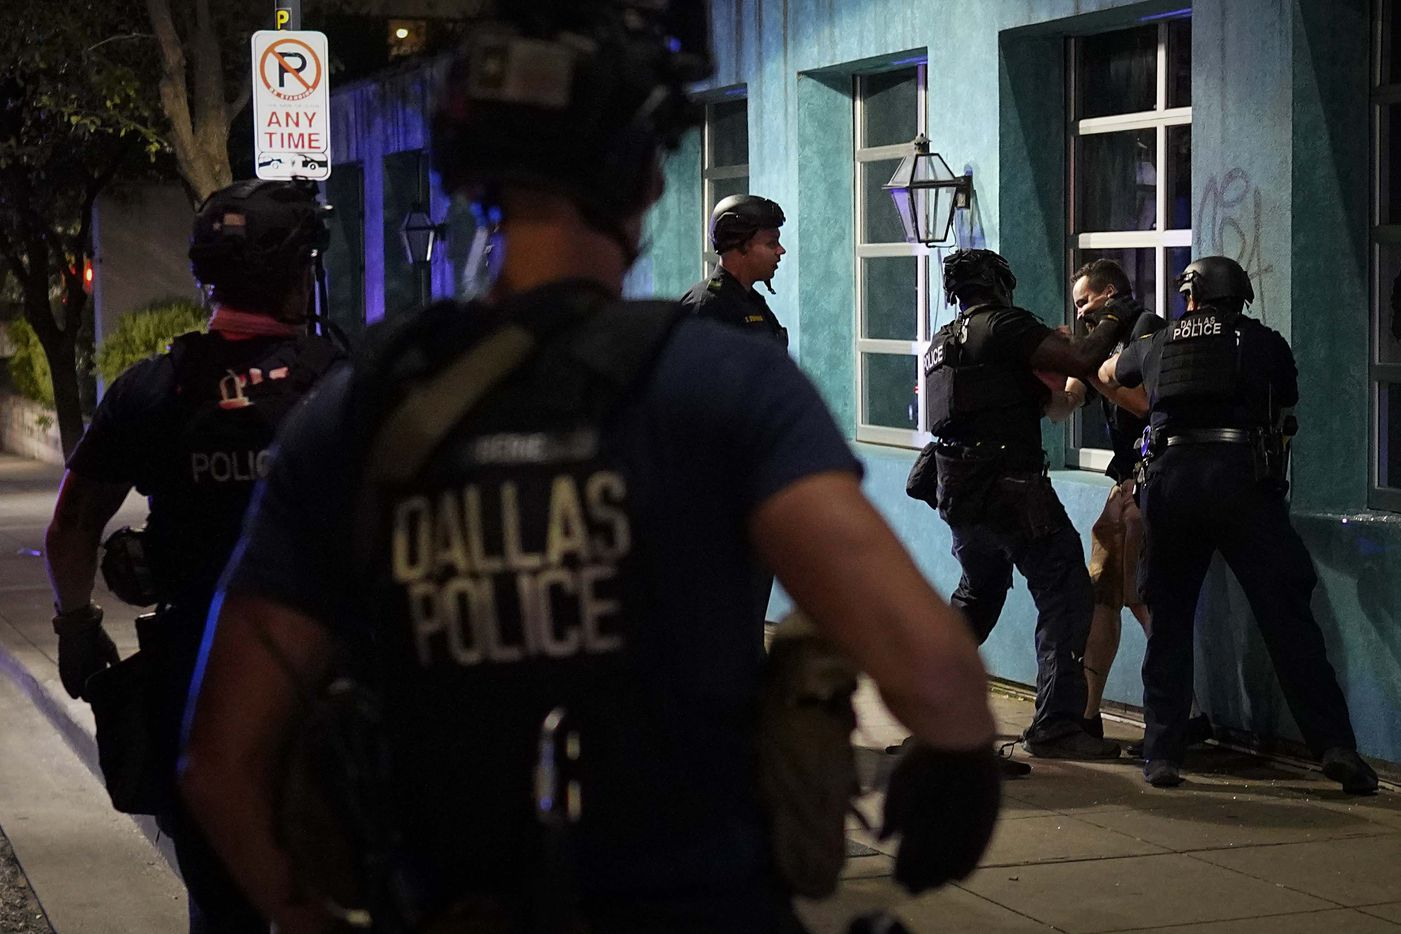 Dallas police arrest a man at Main Street and St. Paul as they go block by block working to clear groups of people from downtown streets following a protest against police brutality in the early morning hours of Saturday, May 30, 2020, in Dallas.